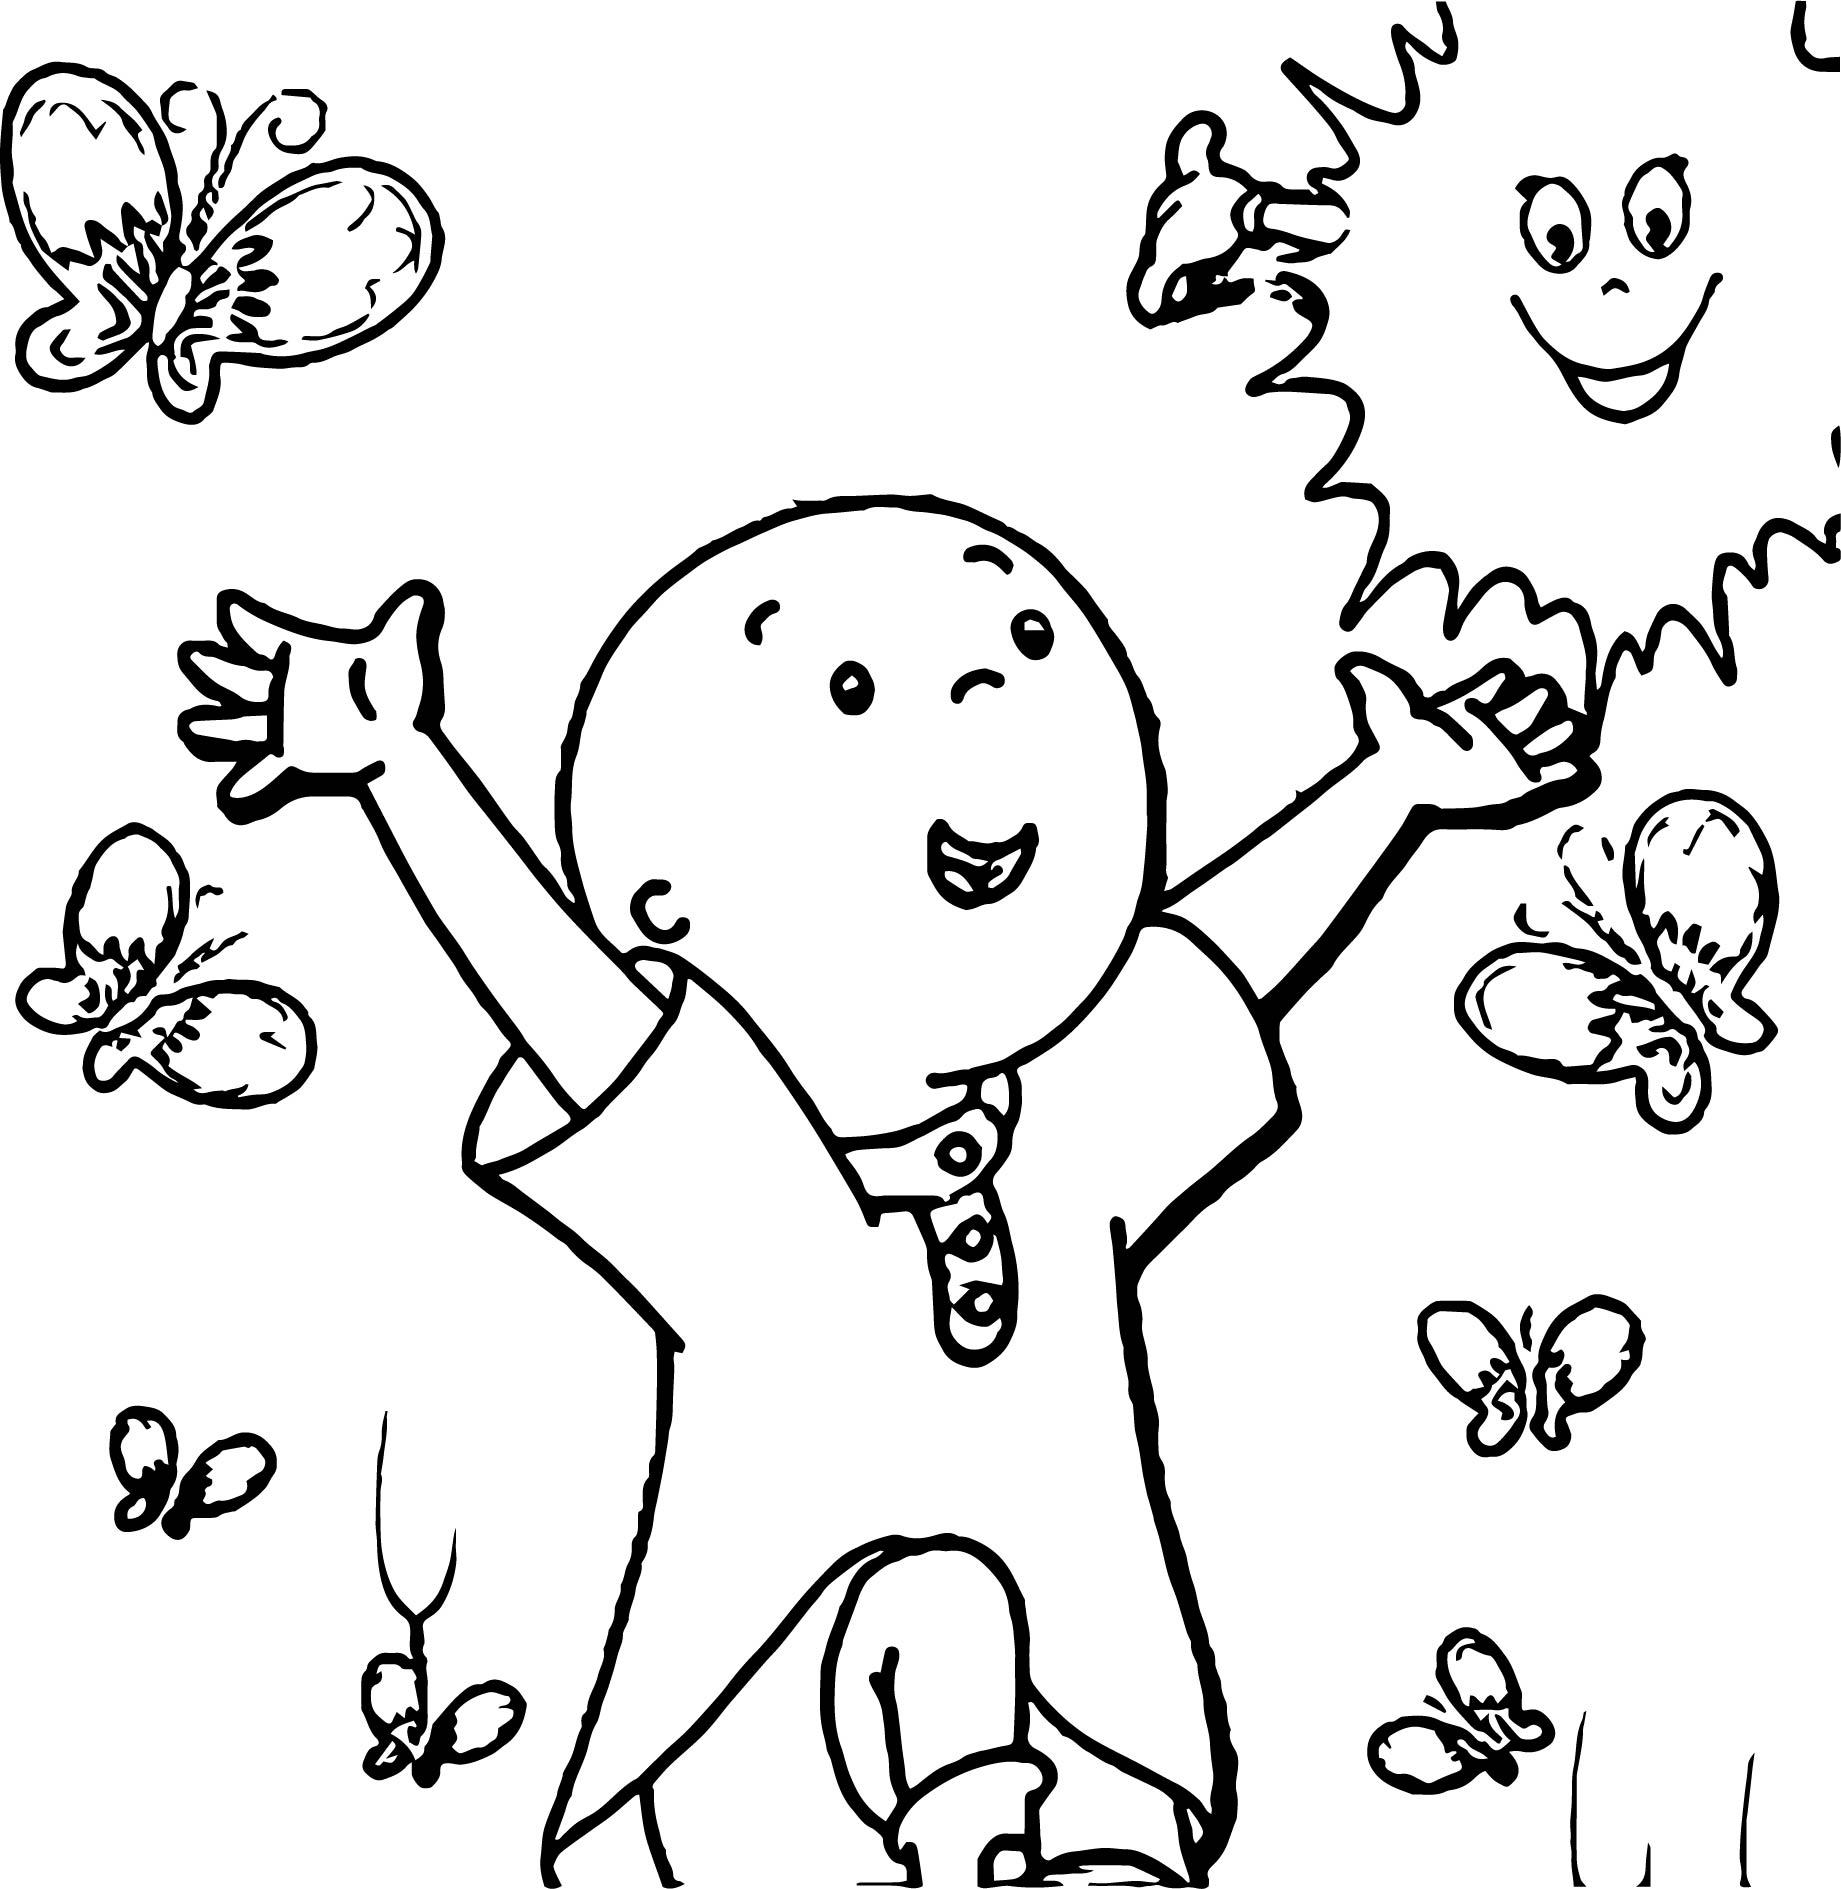 Show Poster Caillou Coloring Page Wecoloringpage Com